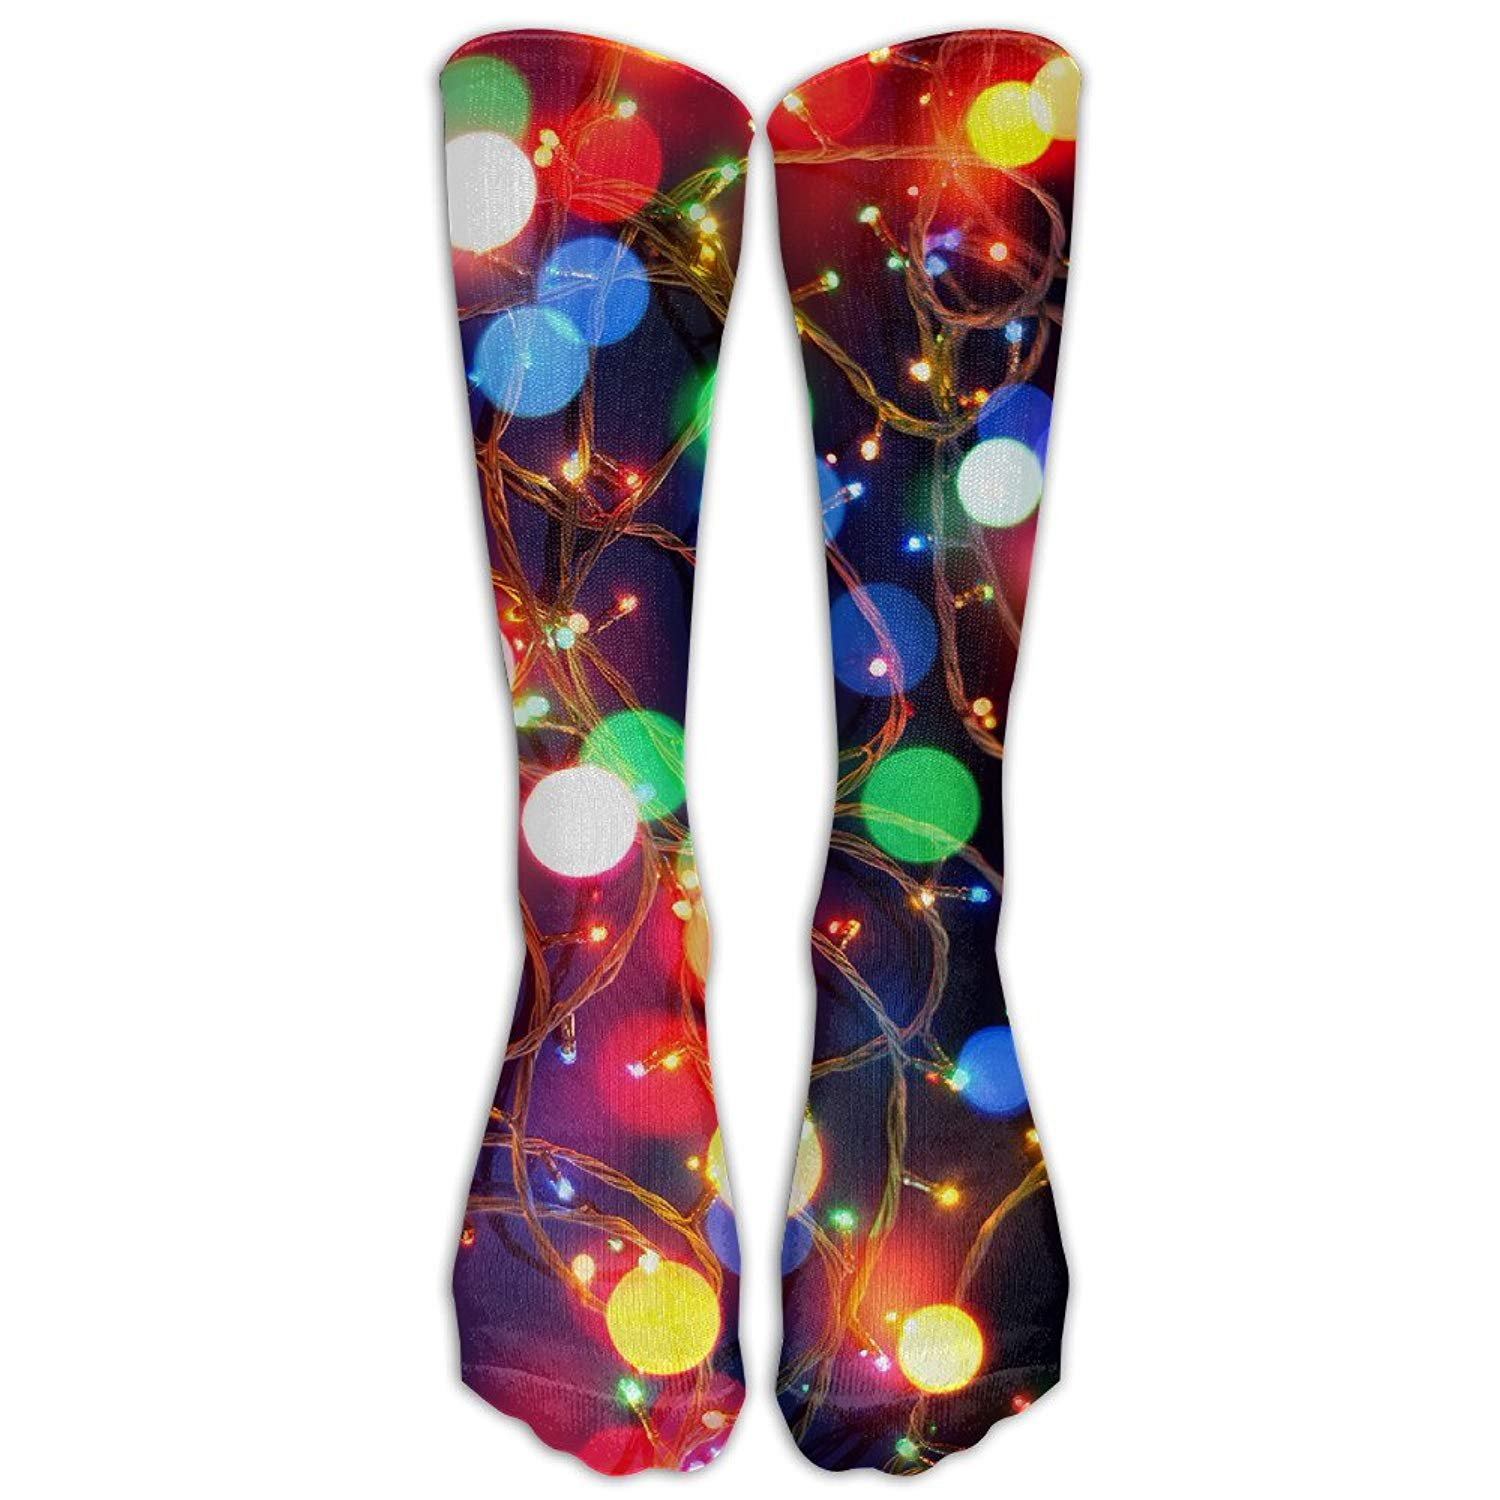 Christmas Lights Unisex Novelty Below Knee Socks Athletic Tube Stockings One Size shower curtain liner